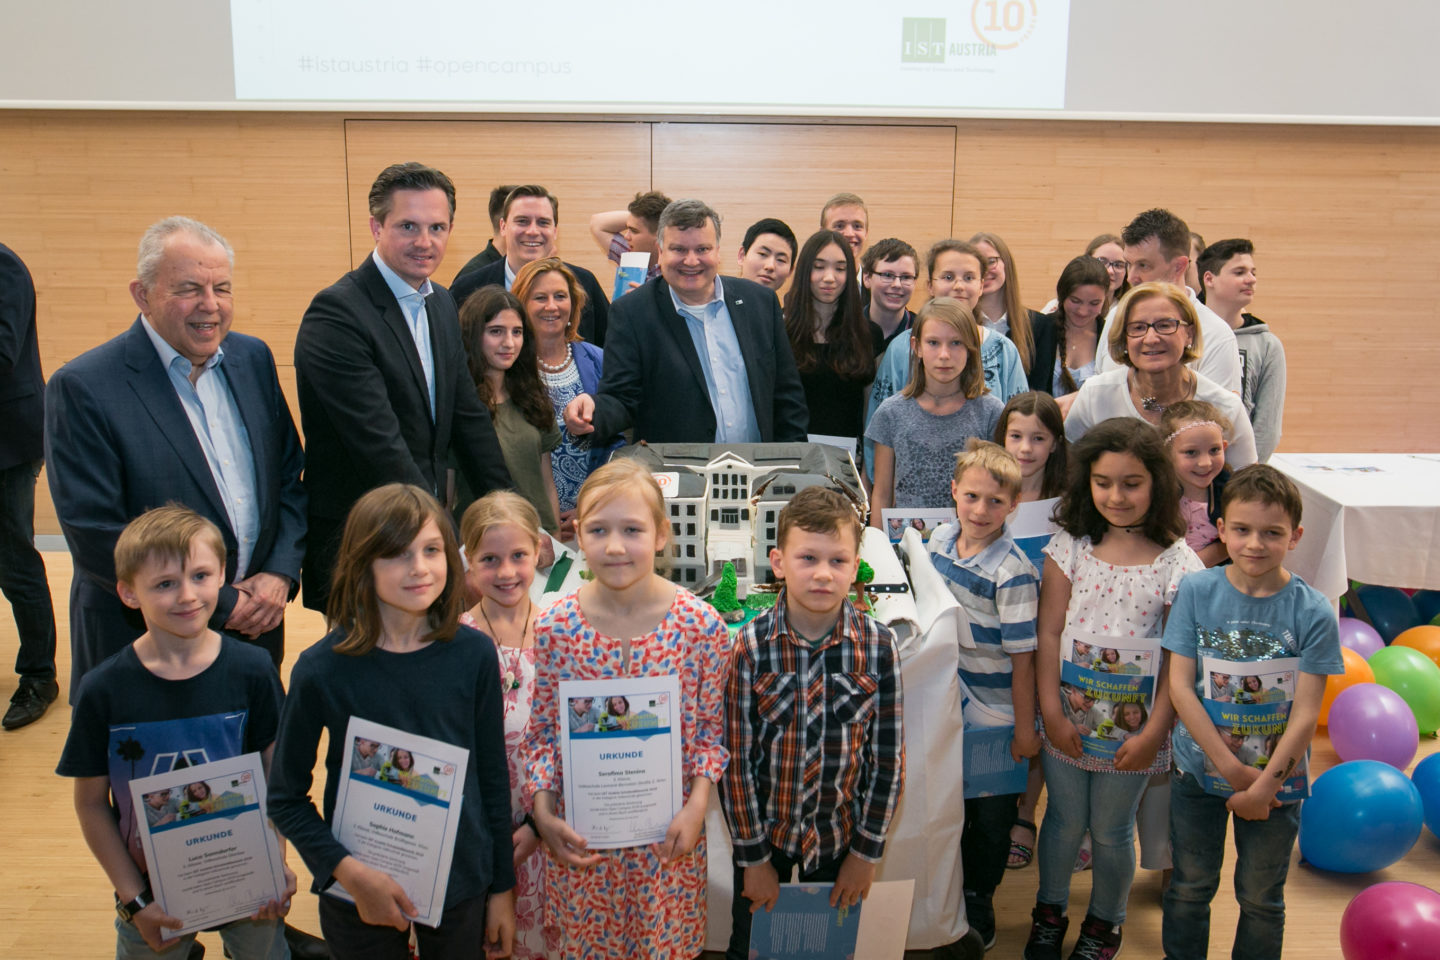 Open Campus celebrations IST Austria